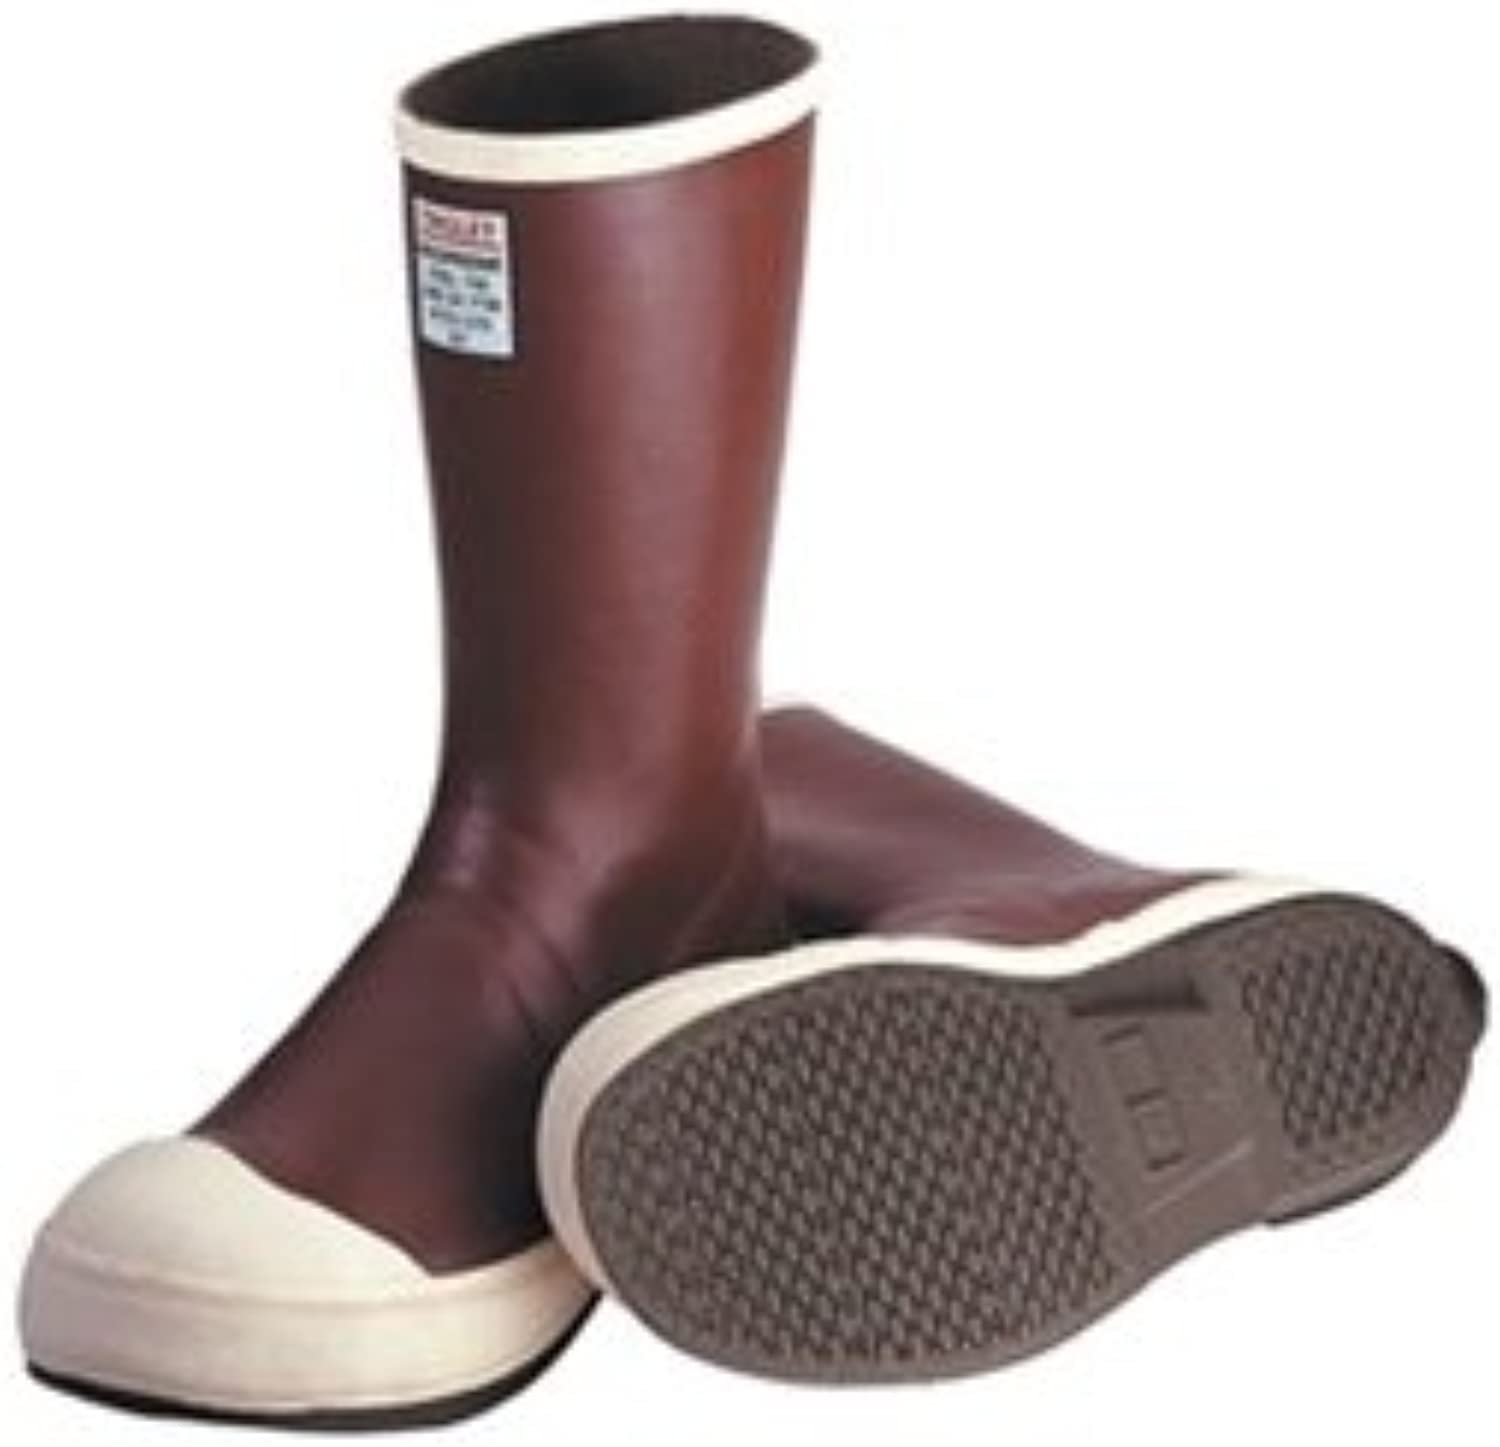 TINGLEY MB924B.14 12-1 2  Safety-Loc Outsole Neoprene Boot with Fabric Liner, Plain Toe, Size 14, Brick Red Brown